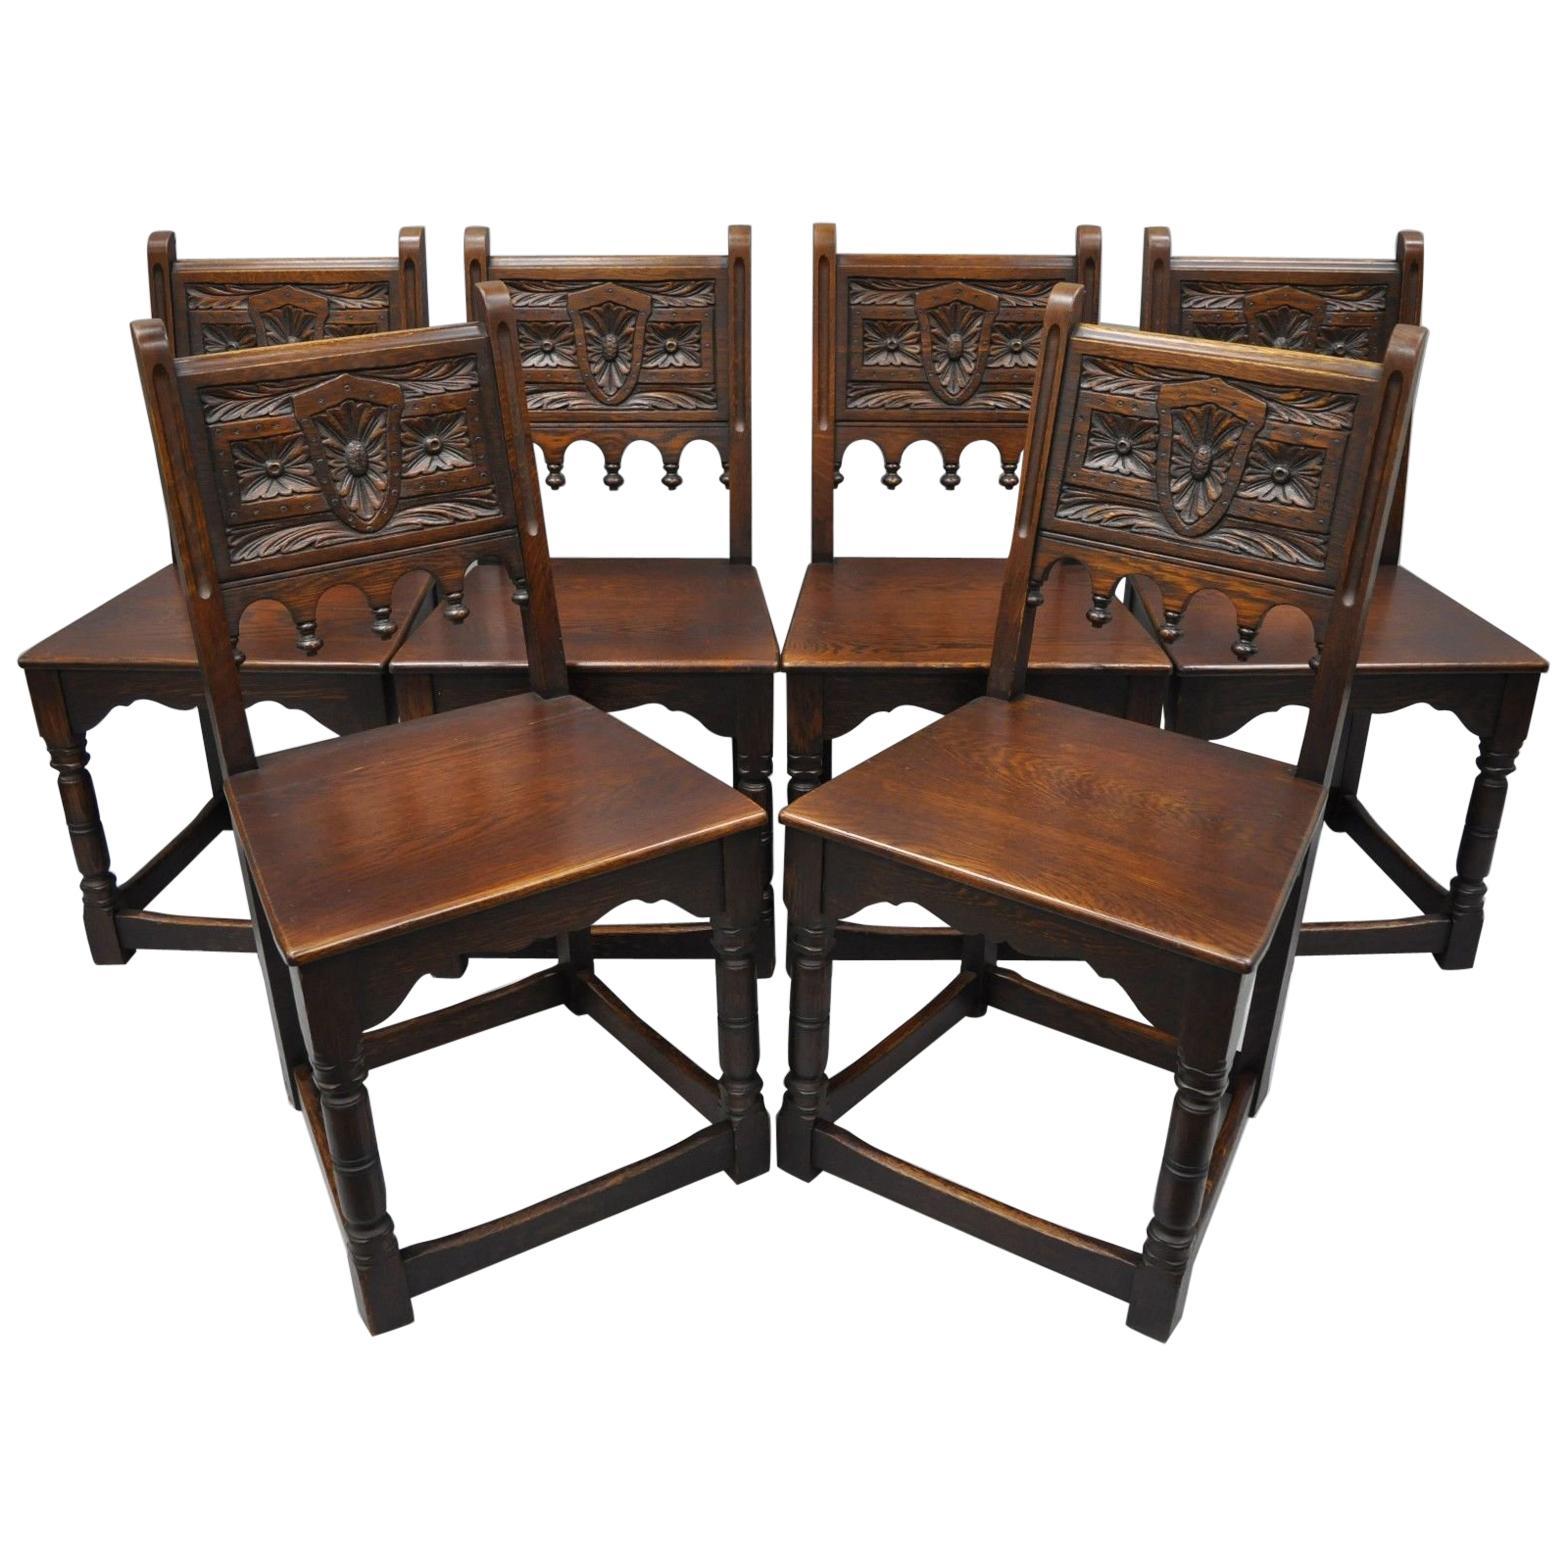 Set Of Six Oak Wood Gothic Jacobean Renaissance Revival Dining Side Chairs